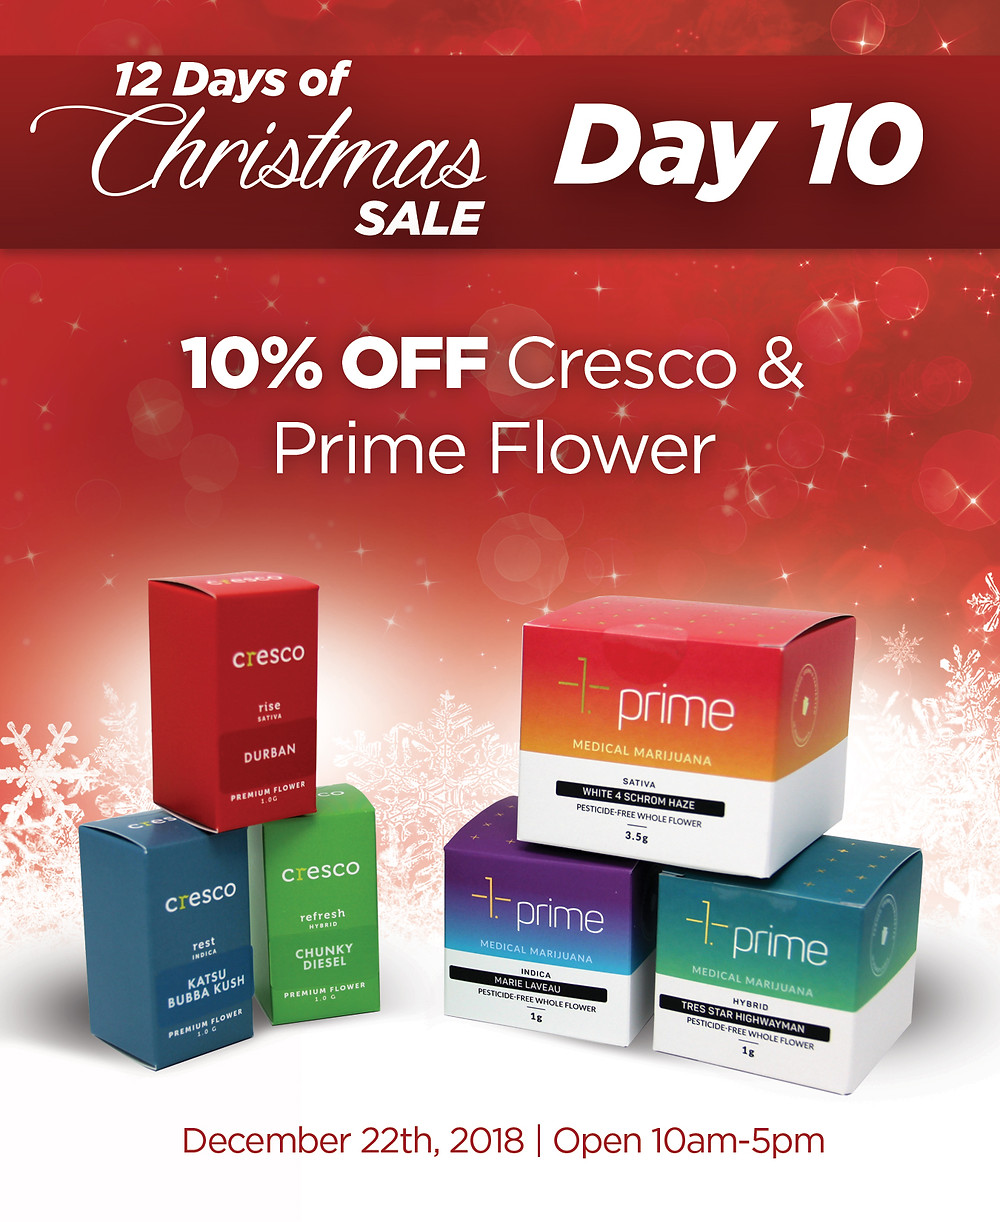 All Cresco and Prime flower is 10% OFF!